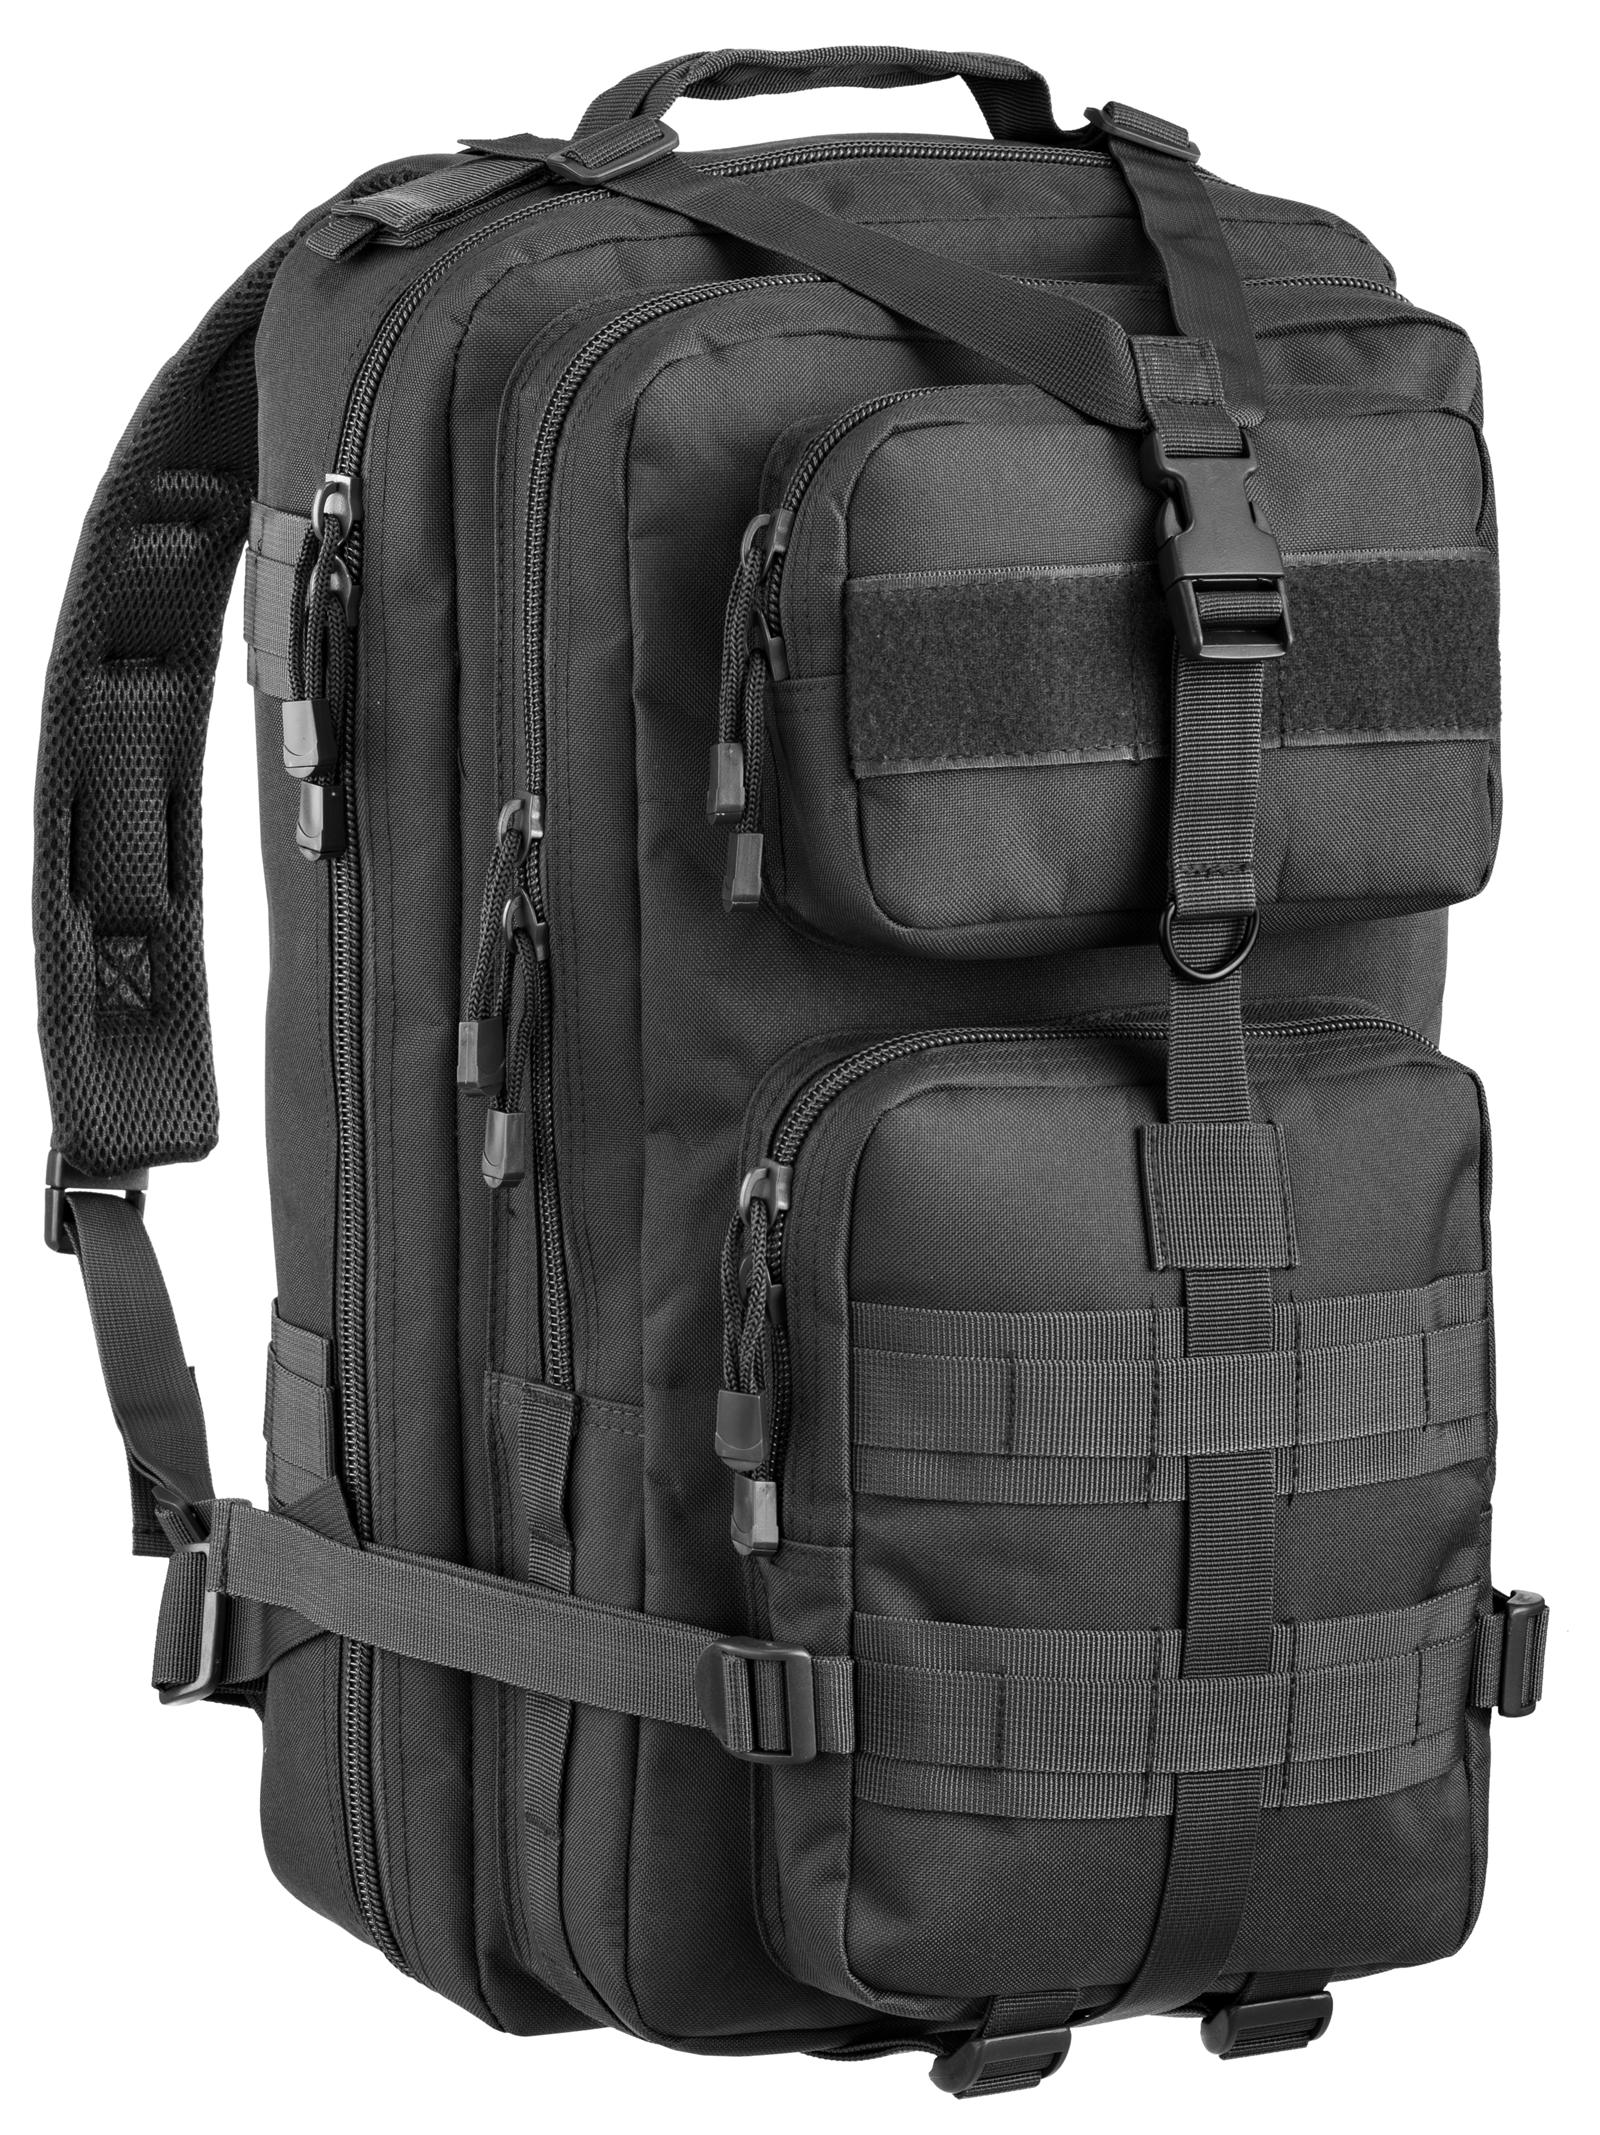 DEFCON 5 TACTICAL BACK PACK HYDRO COMPATIBILE 40 Lt.